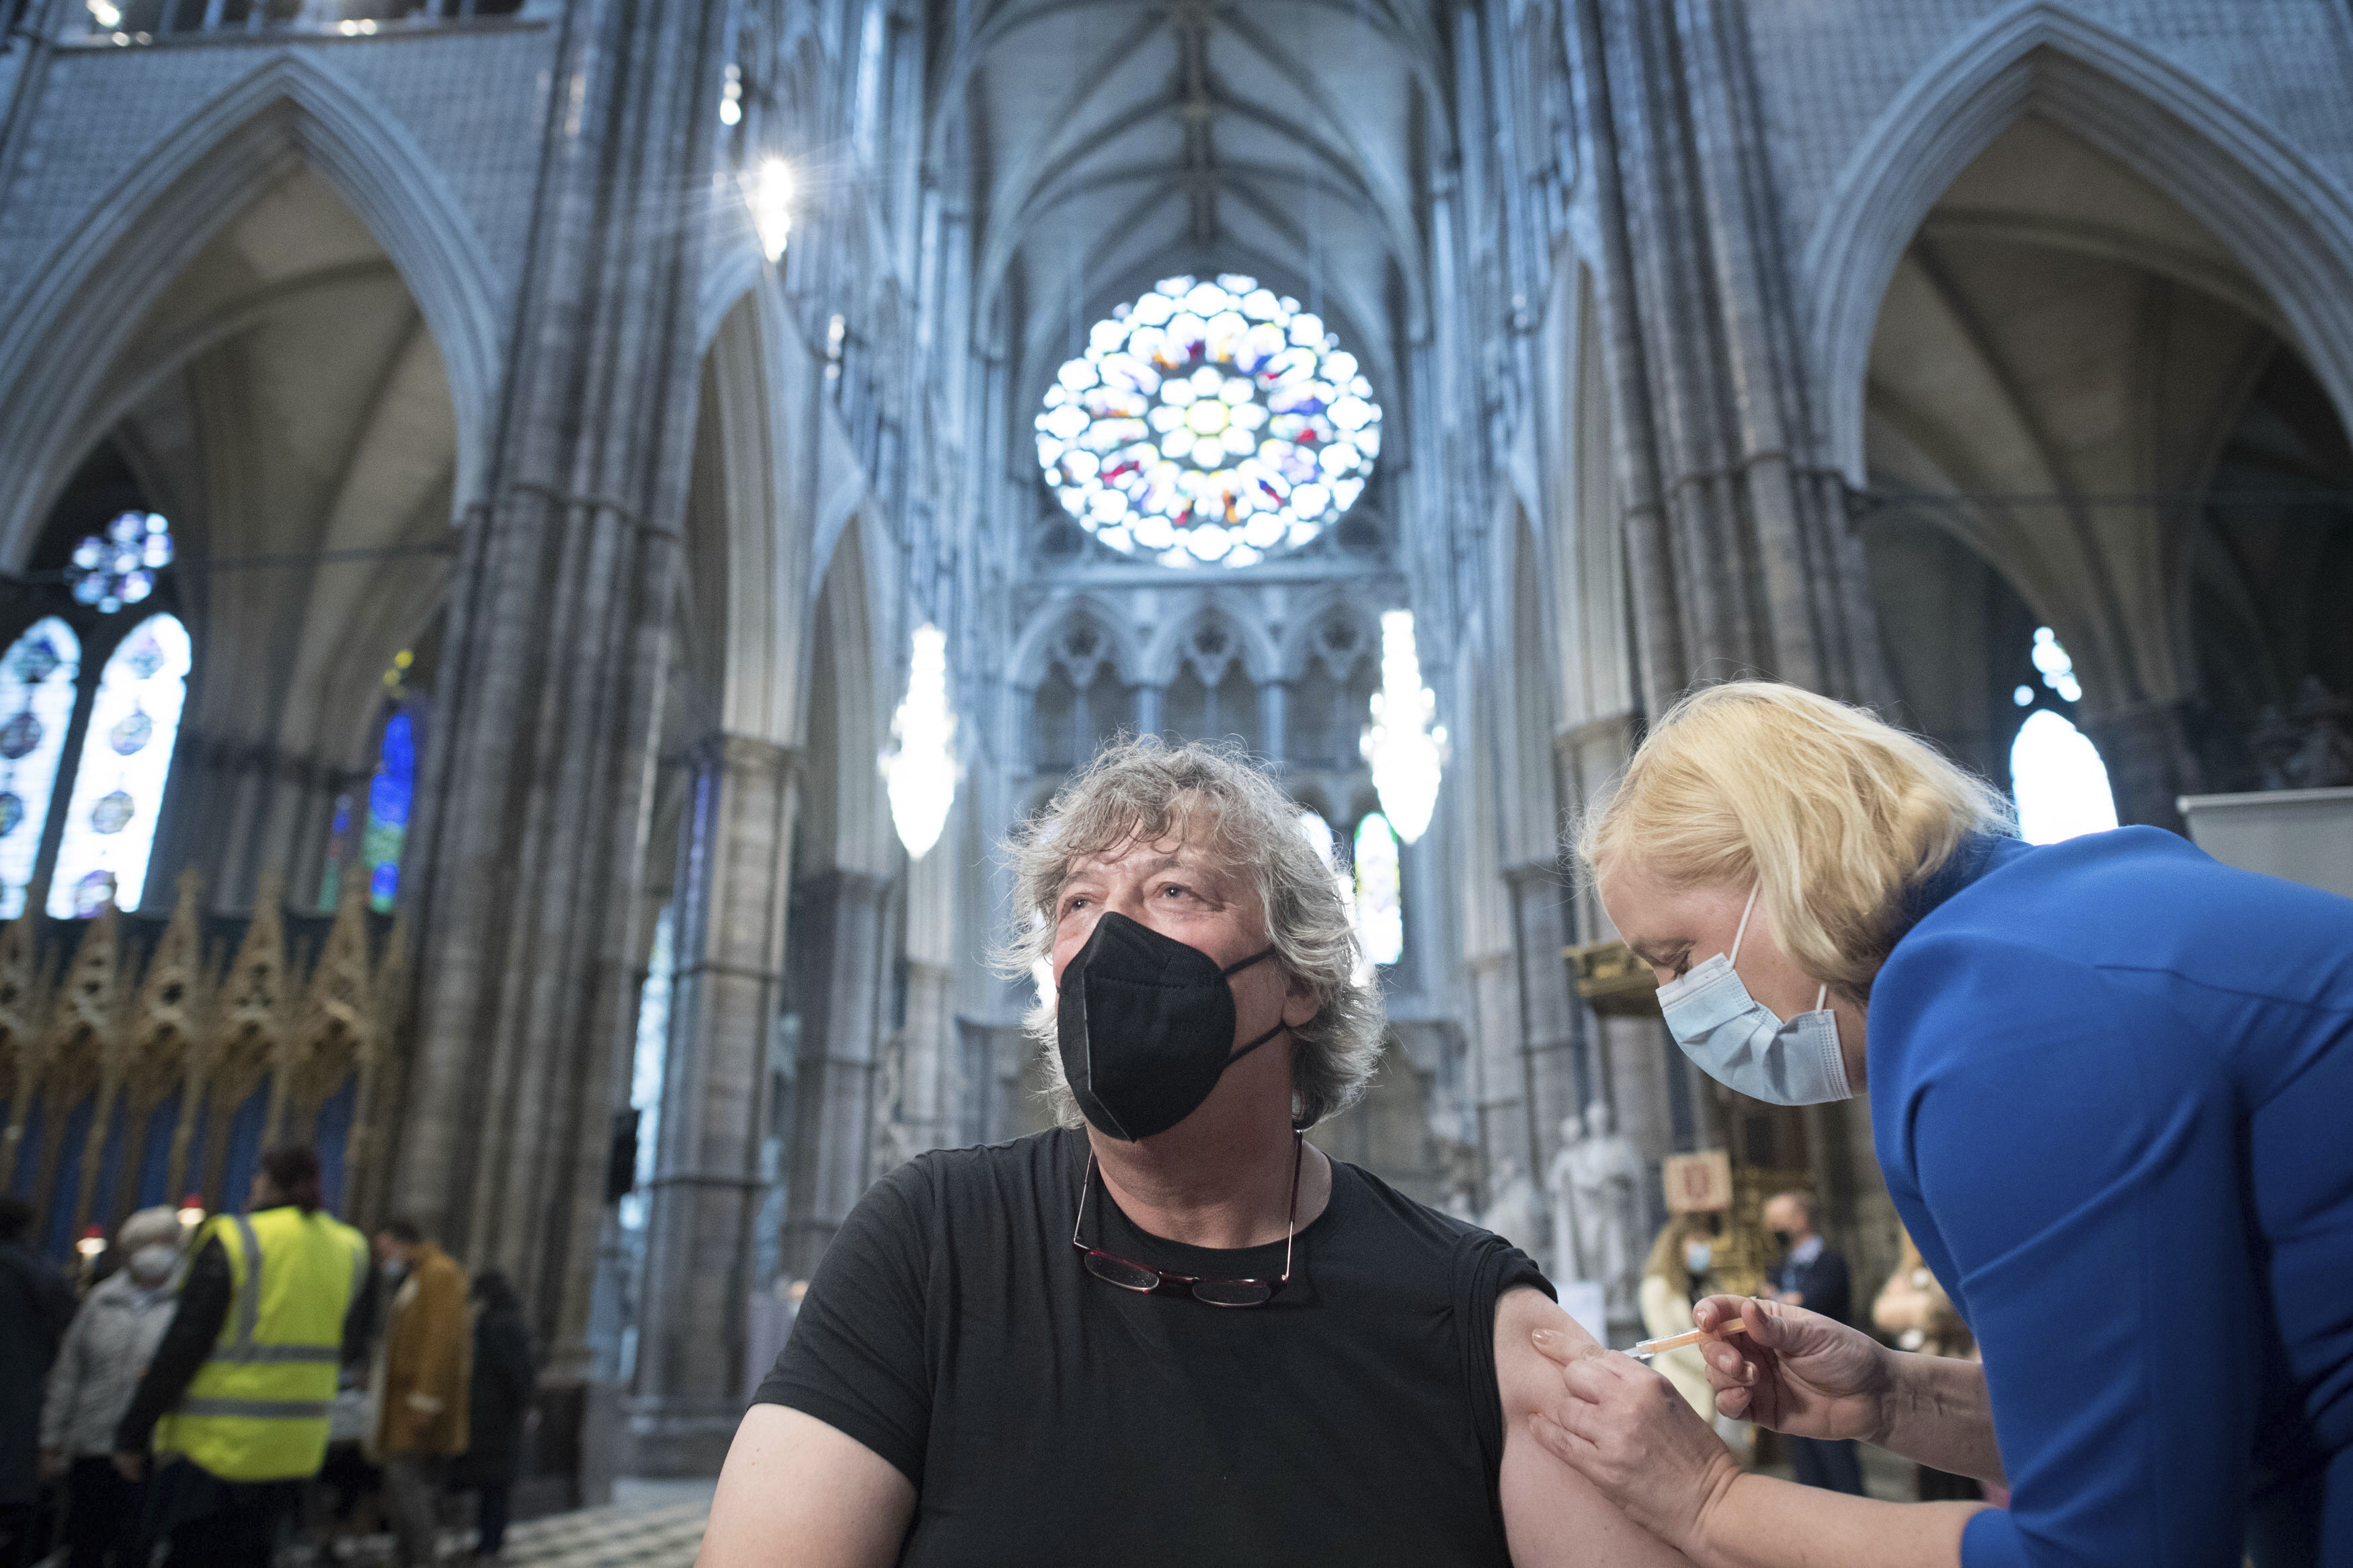 <p>Actor Stephen Fry receives a COVID-19 jab, at a new vaccination site, at Poets' Corner in Westminster Abbey, London, Wednesday March 10, 2021. (Stefan Rousseau/PA via AP)</p>